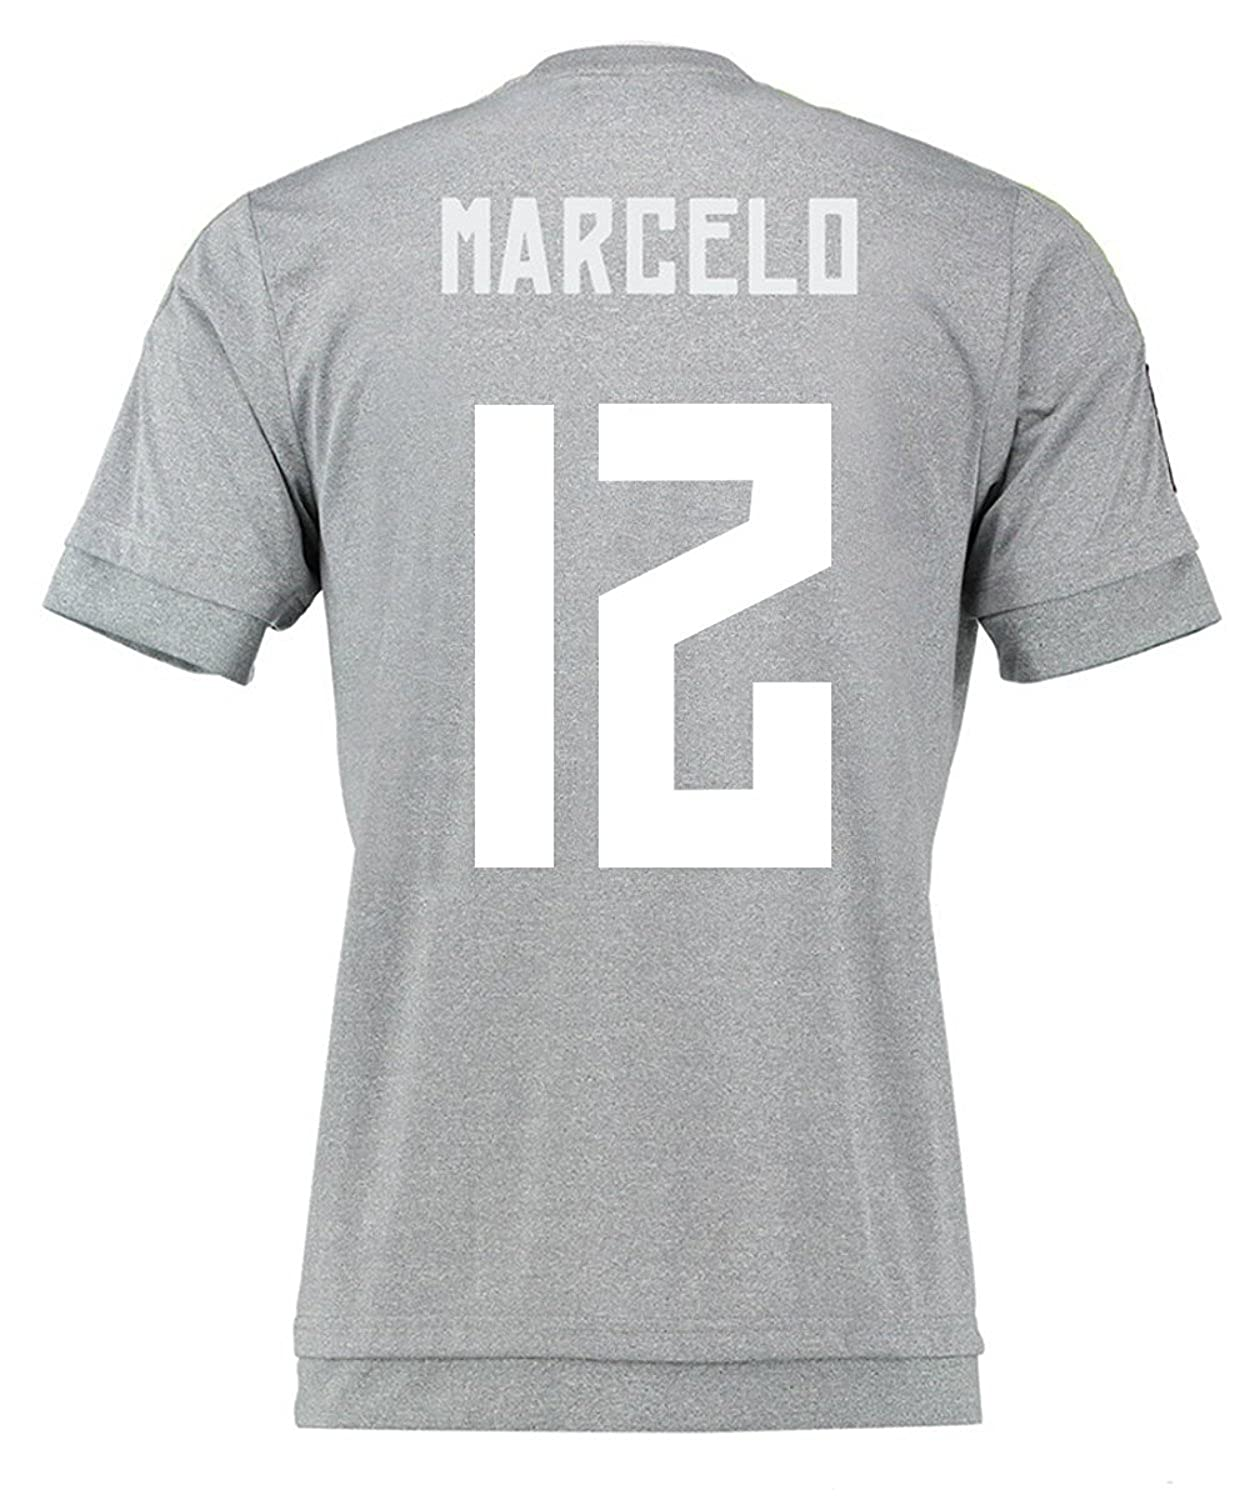 promo code cb643 b09a7 Amazon.com: Marcelo #12 Real Madrid Away Soccer Jersey 2015 ...